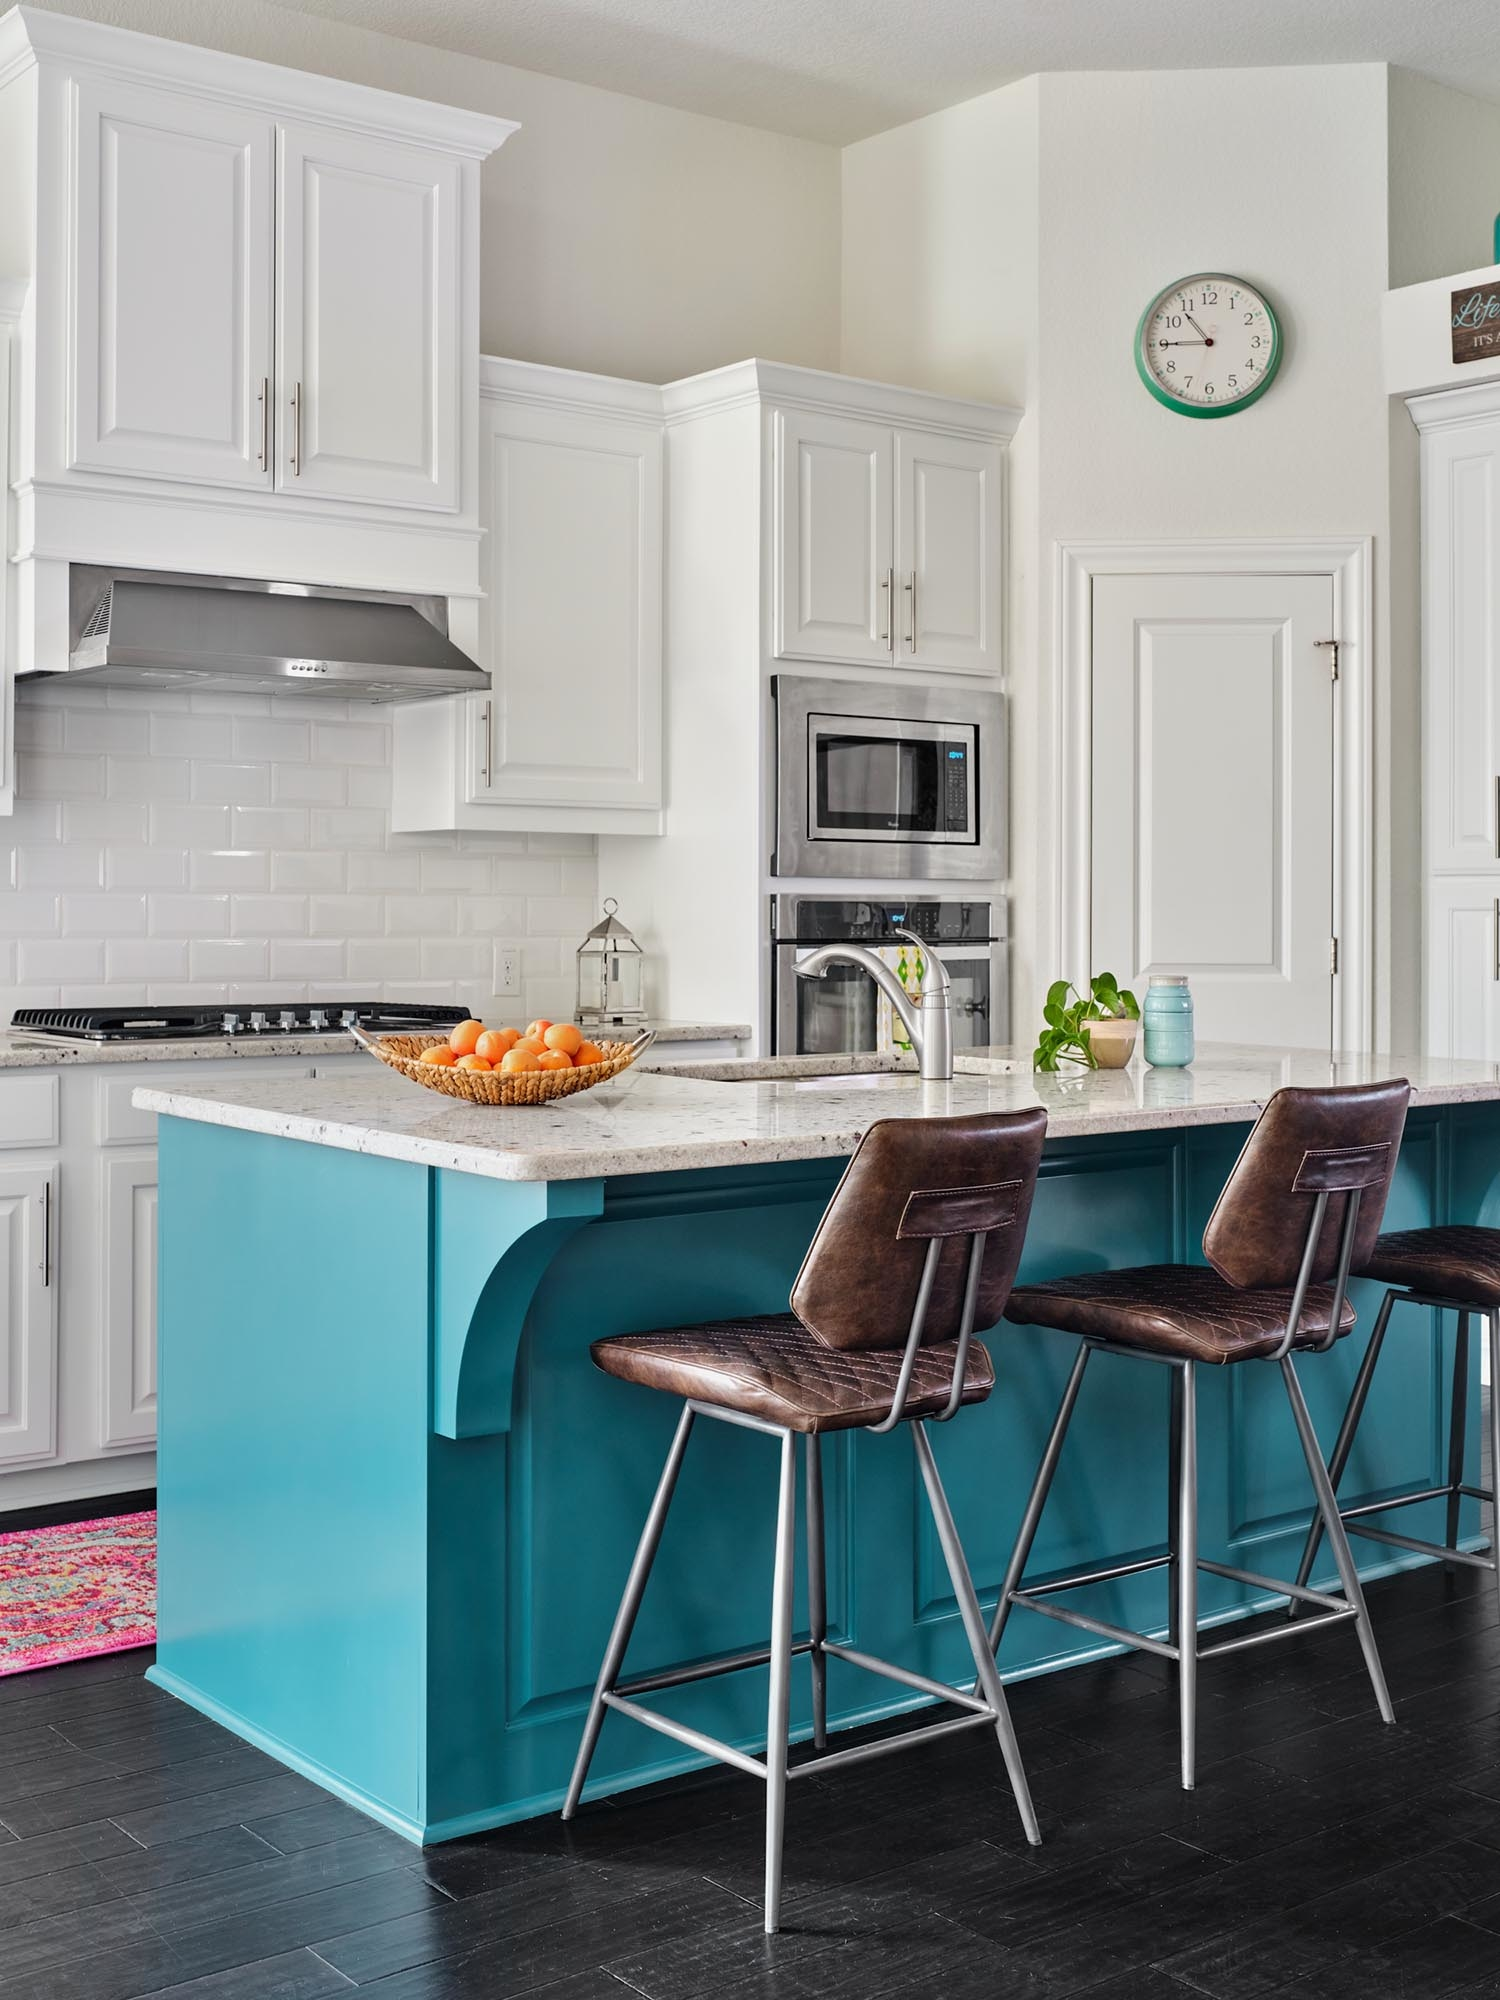 Two tone kitchen in Sherwin Williams Extra White, Benjamin Moore Naples Blue, San Antonio cabinet painting